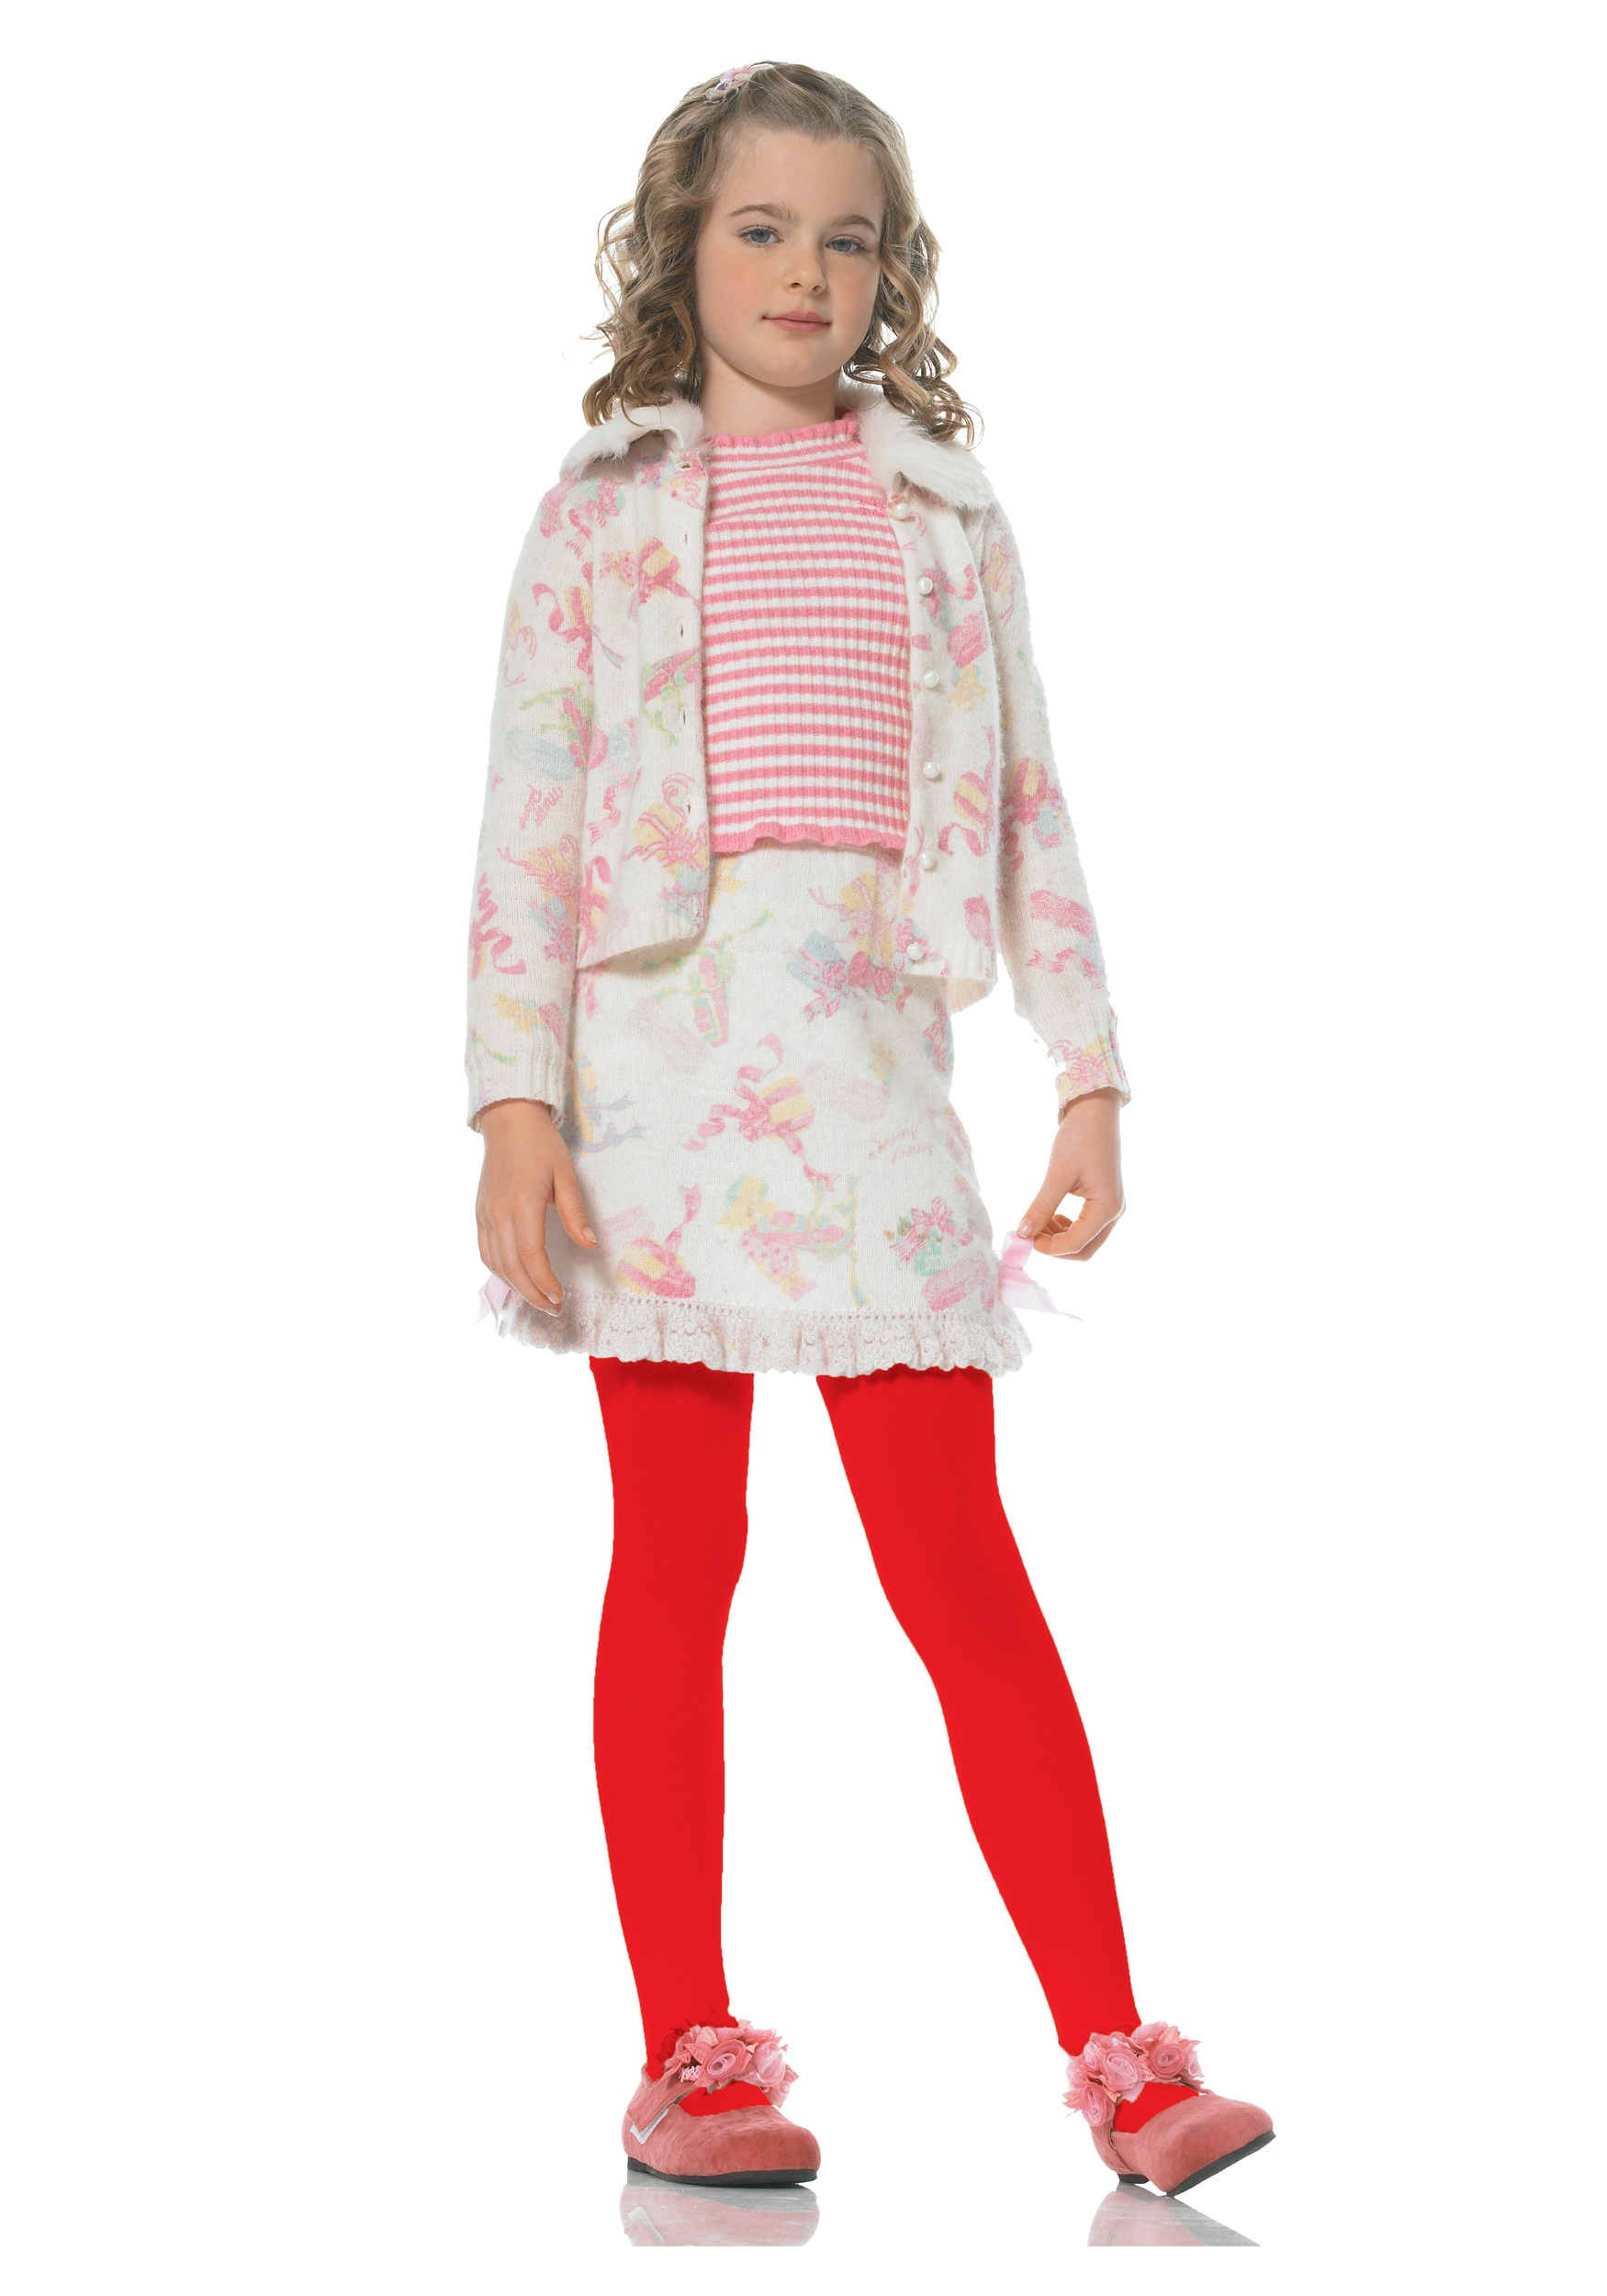 Shop for kids red leggings online at Target. Free shipping on purchases over $35 and save 5% every day with your Target REDcard.